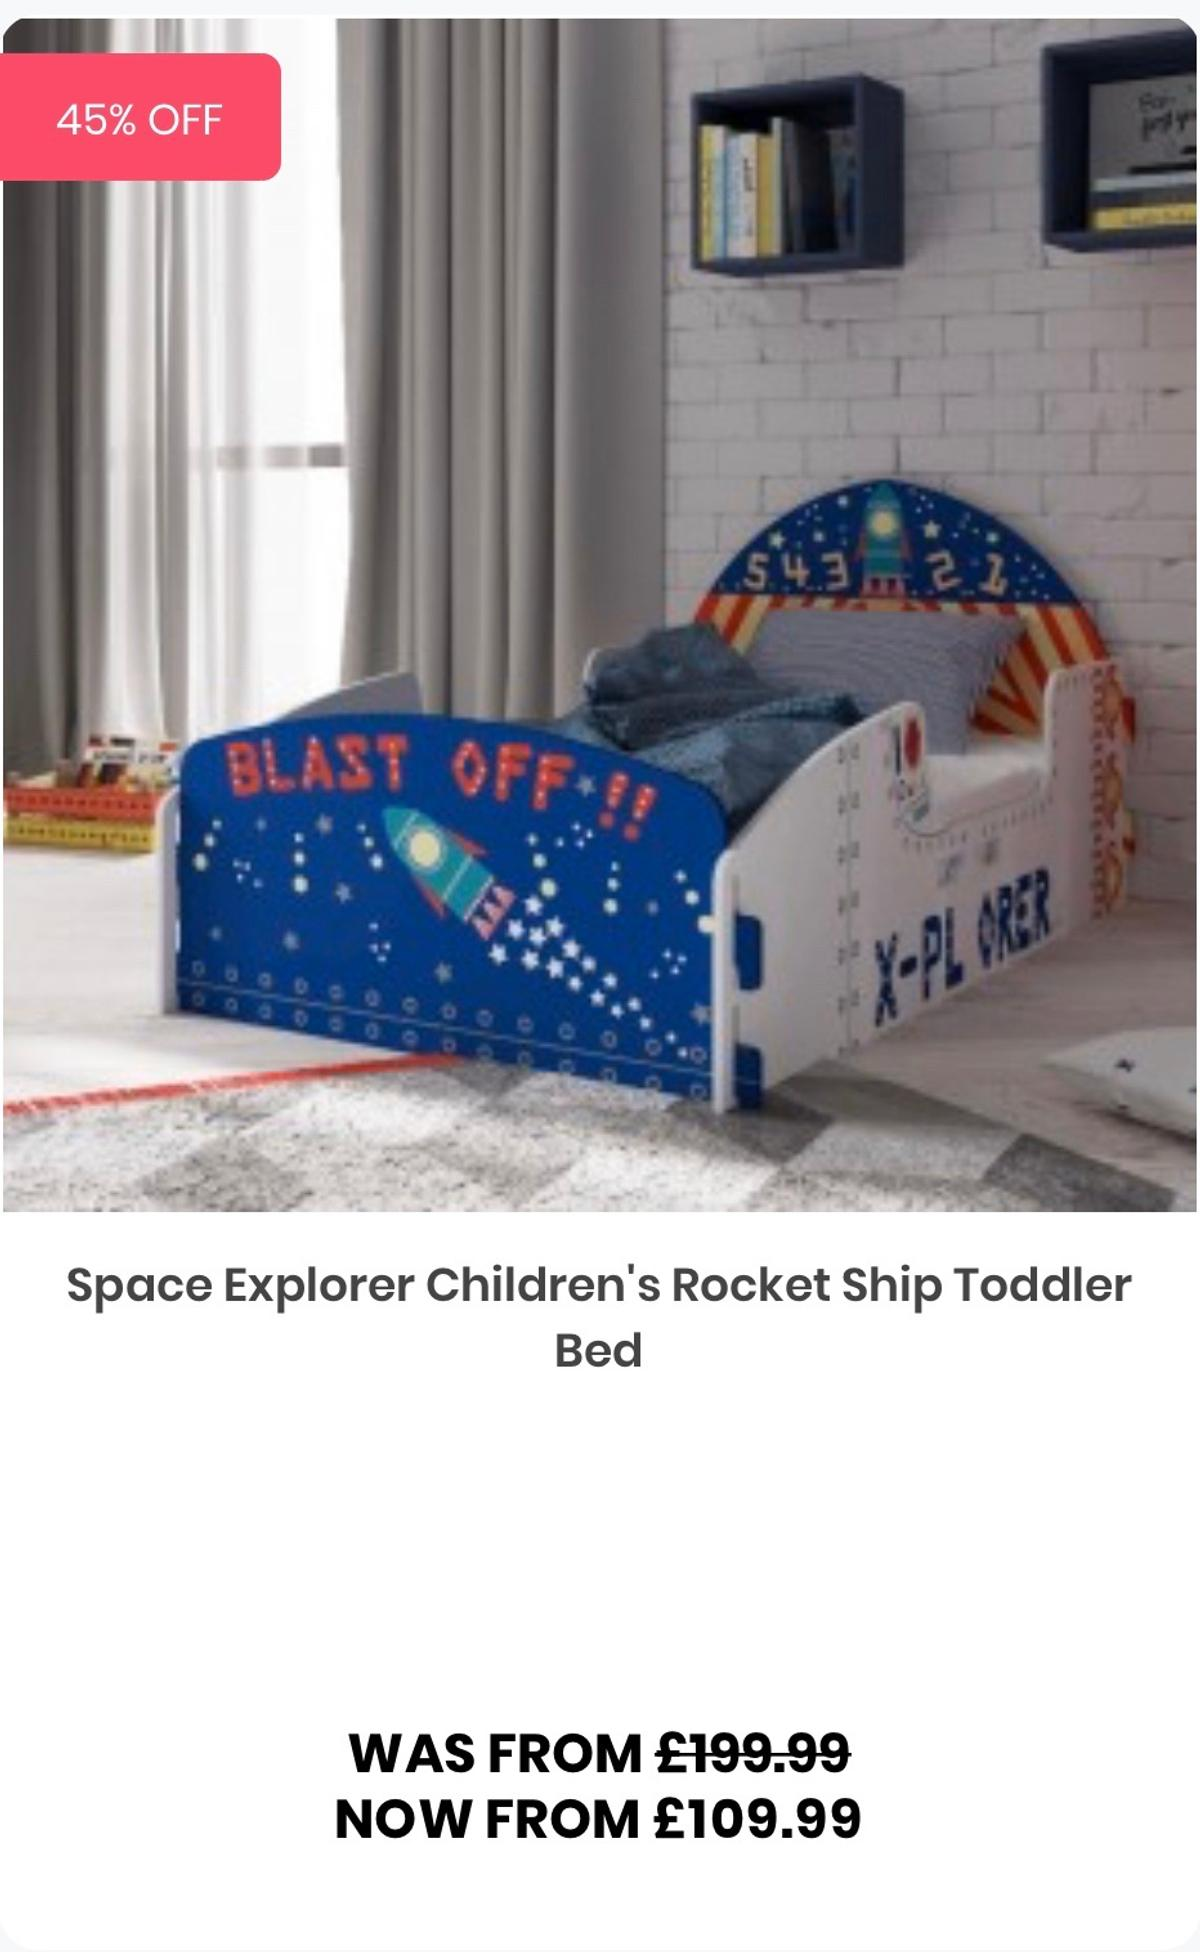 Picture of: Space Explorer Toddler Bed Matchin Bookcase In Dy11 Wyre Forest For 25 00 For Sale Shpock